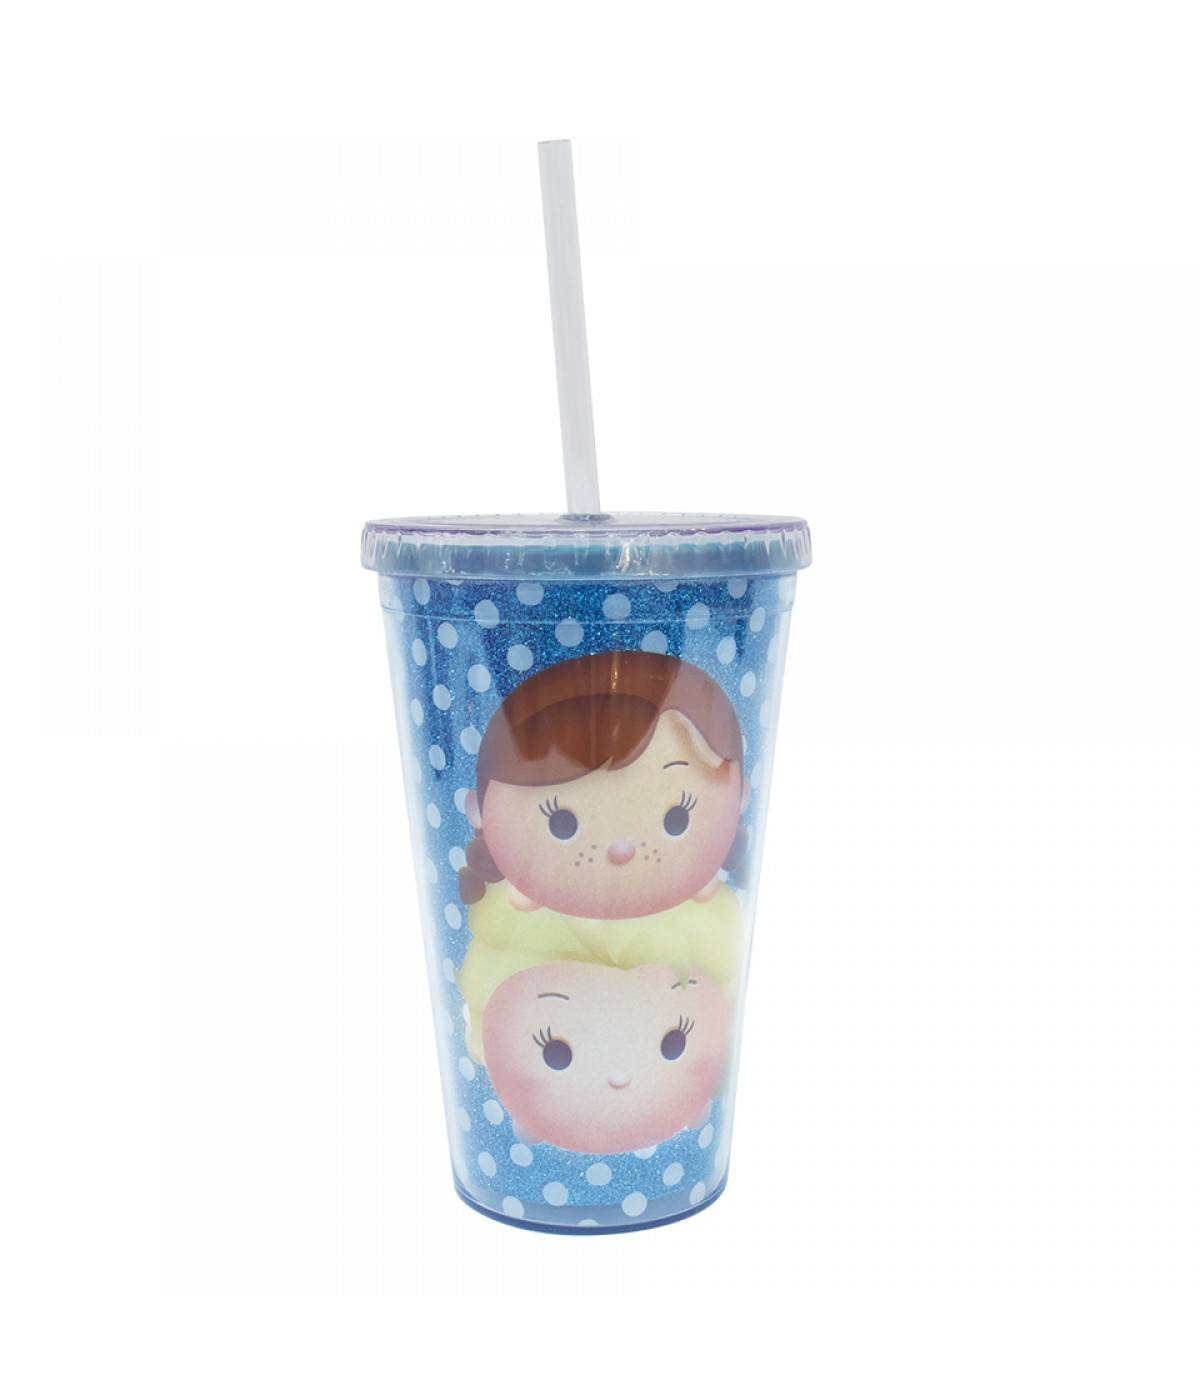 Copo Plástico Com Canudo Personagens Disney Frozen Tsum Tsum - 450ml